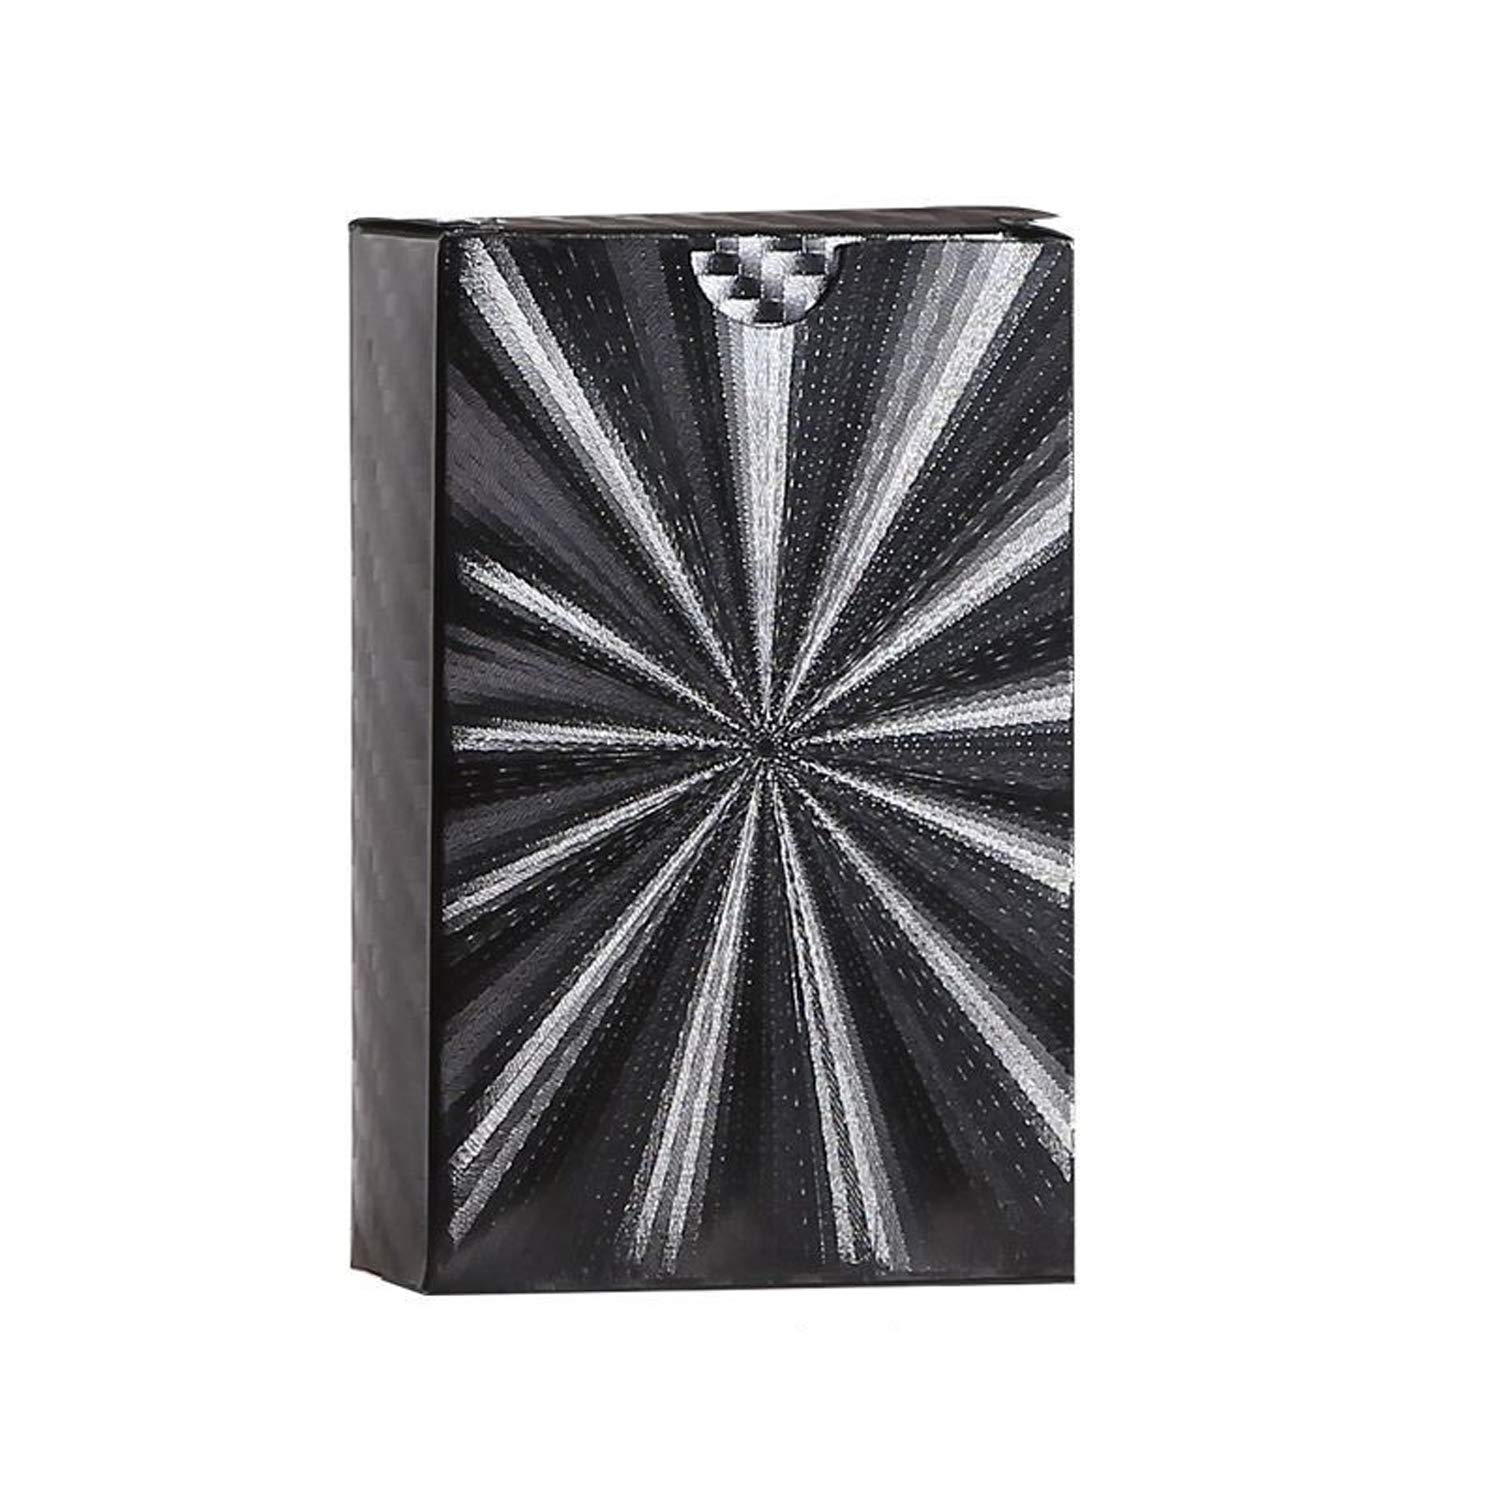 R twoboxes PET Local Black gold foil Poker, Creative Waterproof Plastic Washable Playing Cards,H,twoboxes